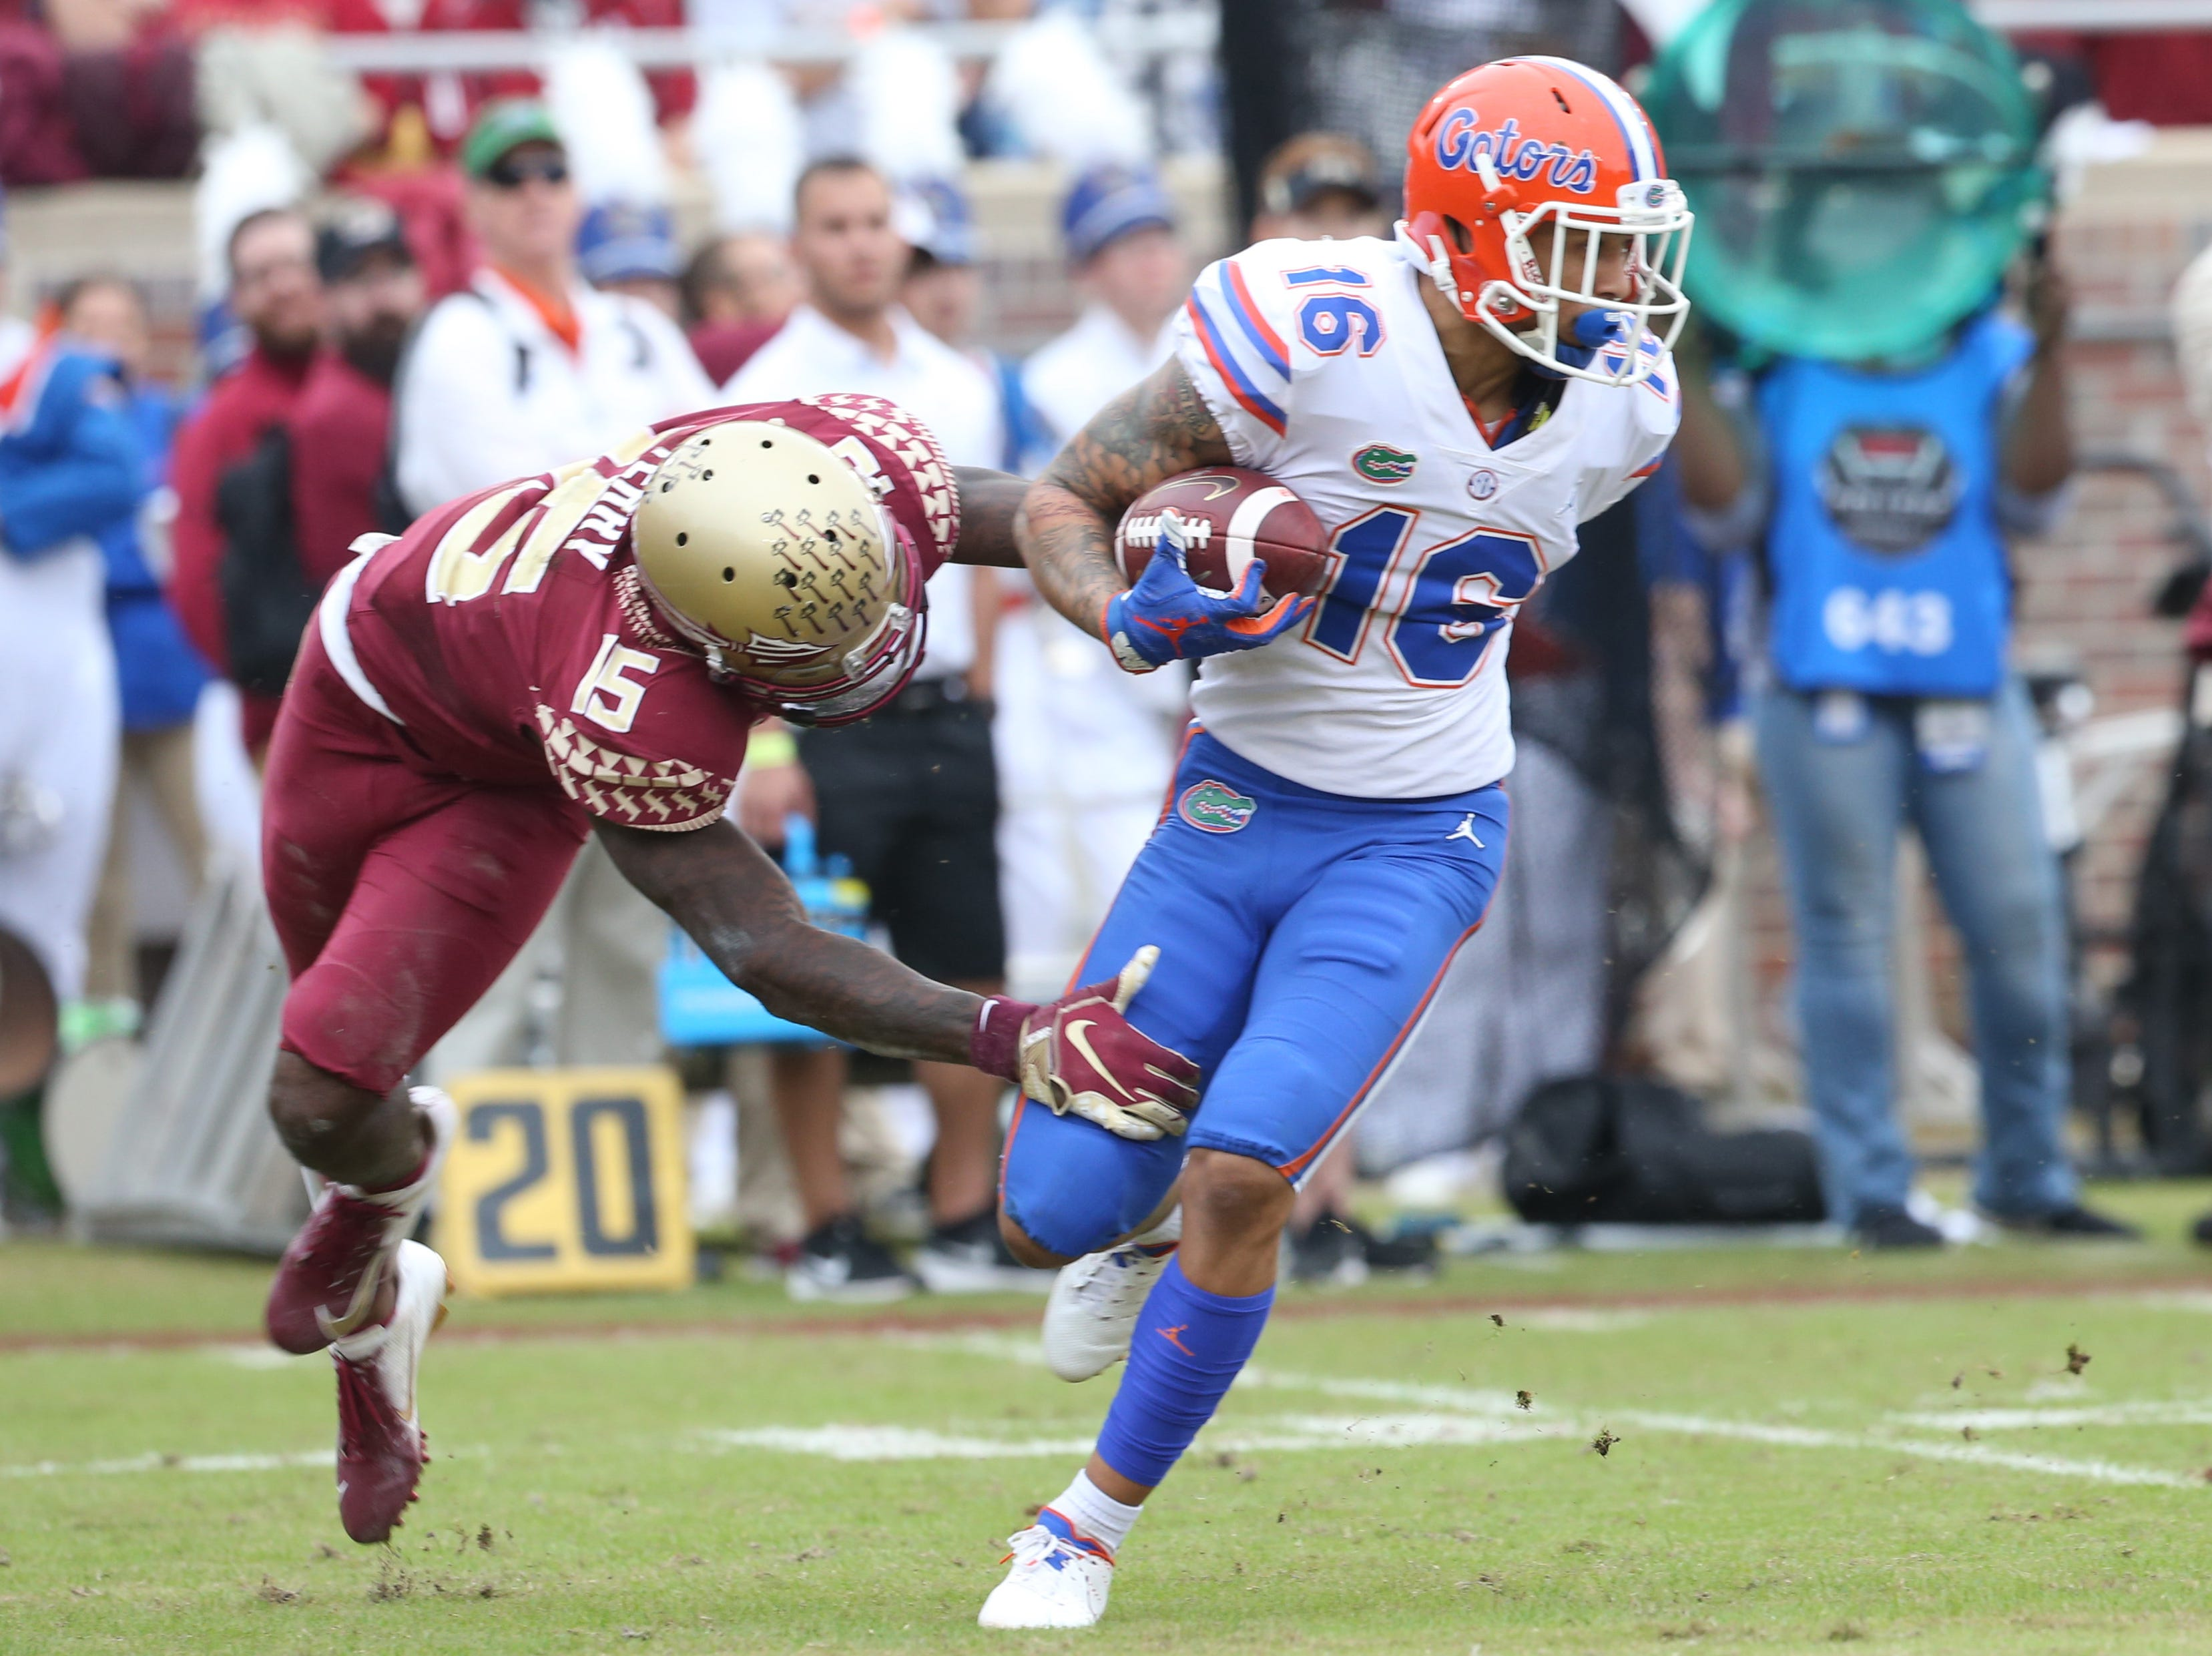 Florida Gators wide receiver Freddie Swain (16) fights off a tackle from Florida State Seminoles defensive back Carlos Becker III (15) as the Florida State Seminoles take on their rival the Florida Gators in college football at Doak S. Campbell Stadium, Saturday, Nov. 24, 2018.